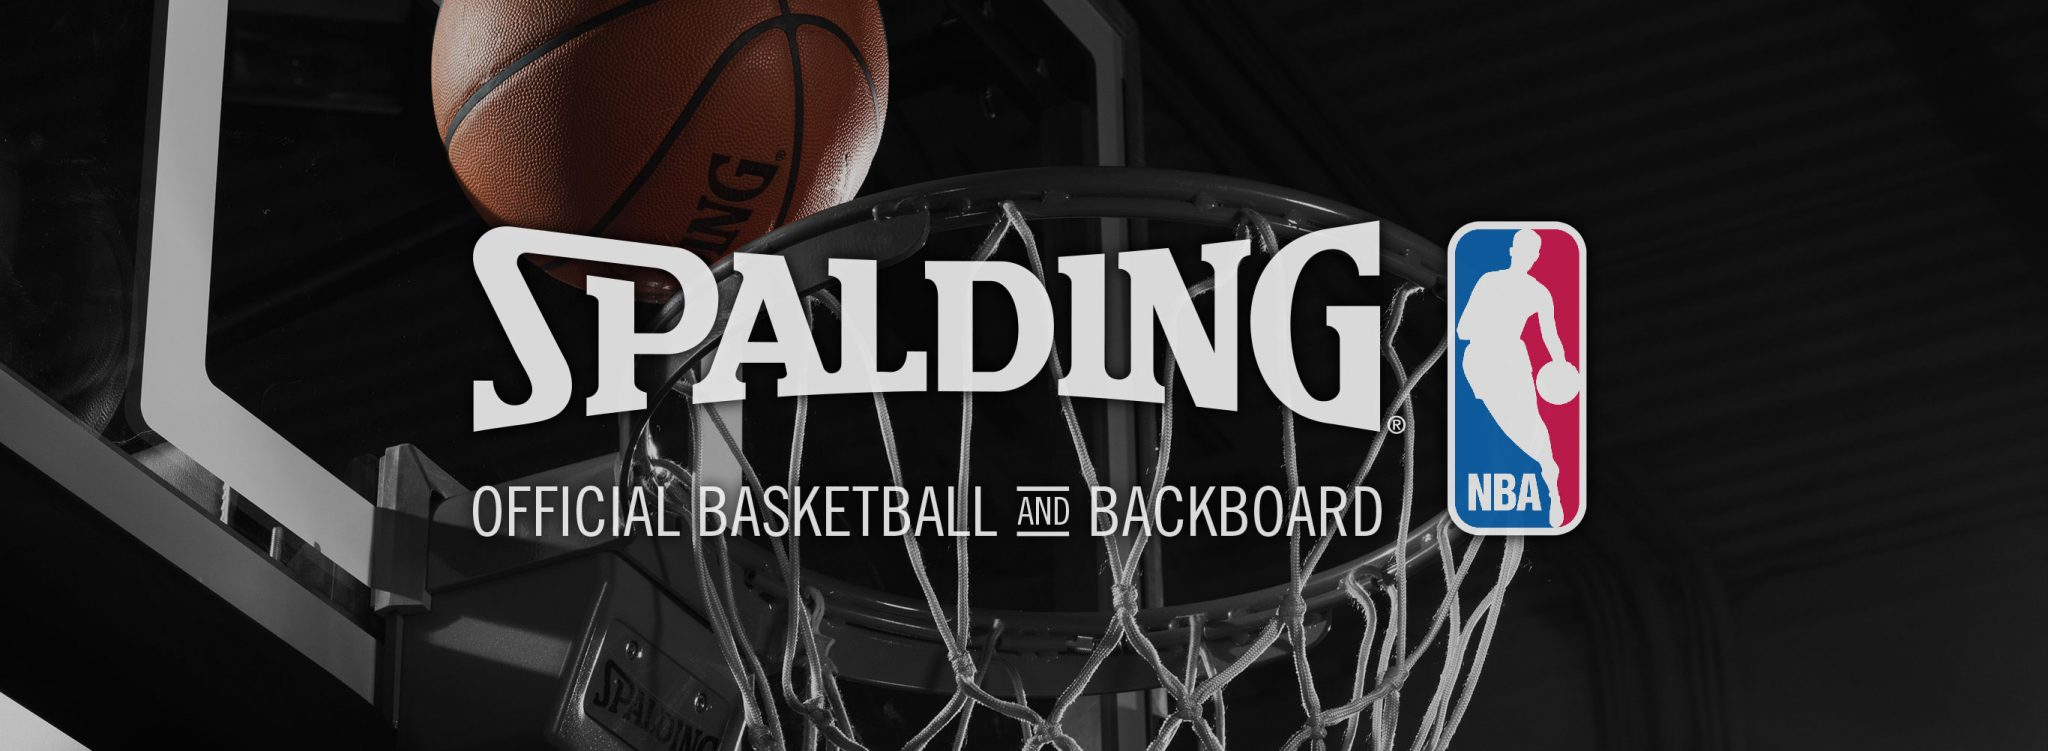 spalding home nba banner